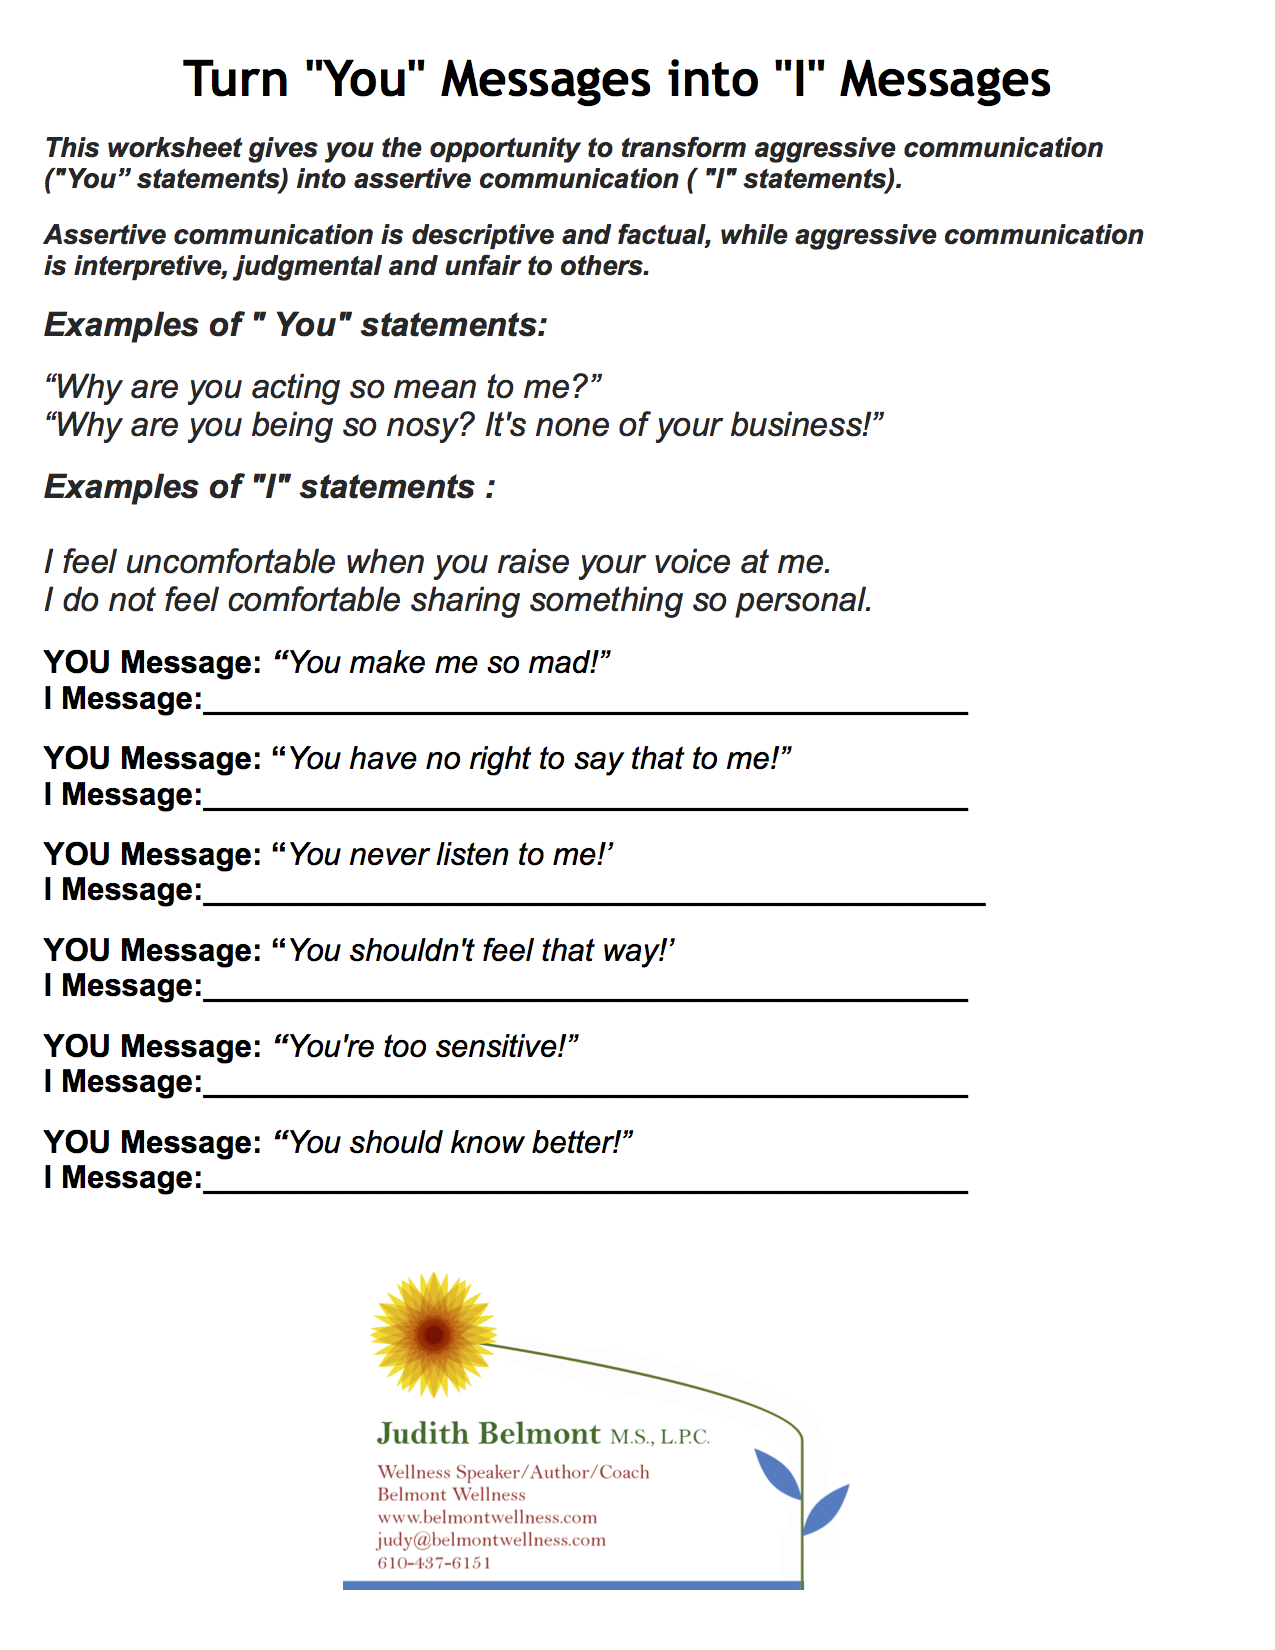 Worksheets Assertive Communication Worksheet turning you messages into i psychoeducational self coping skills